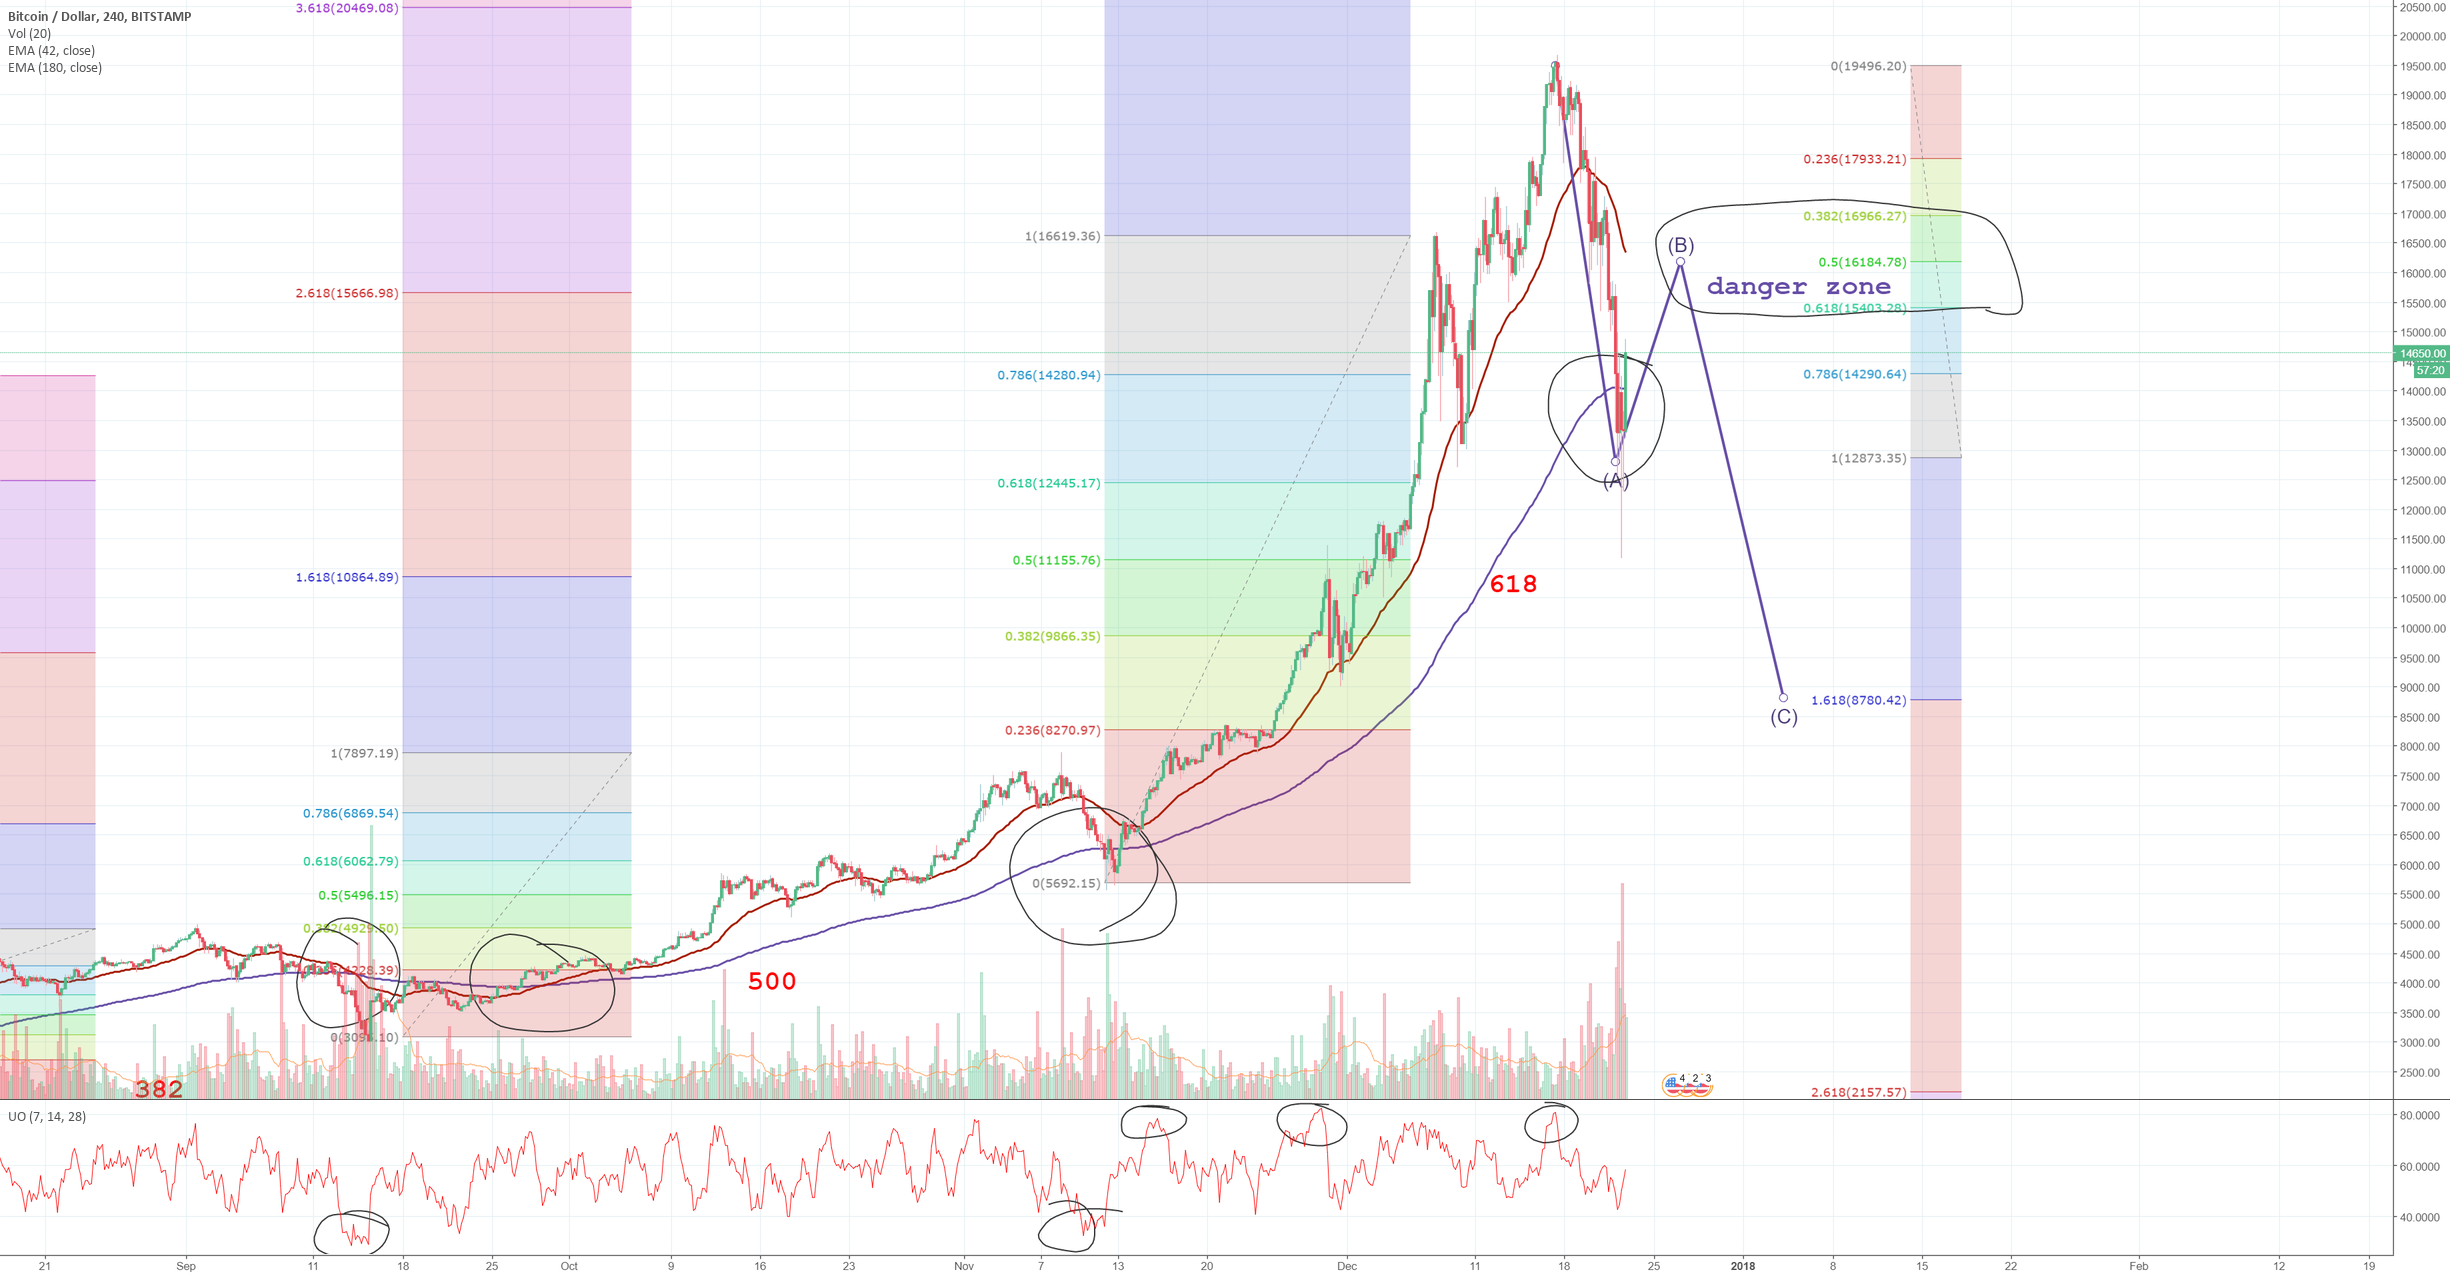 BTC possible bull trap ahead & systemic risk to the market